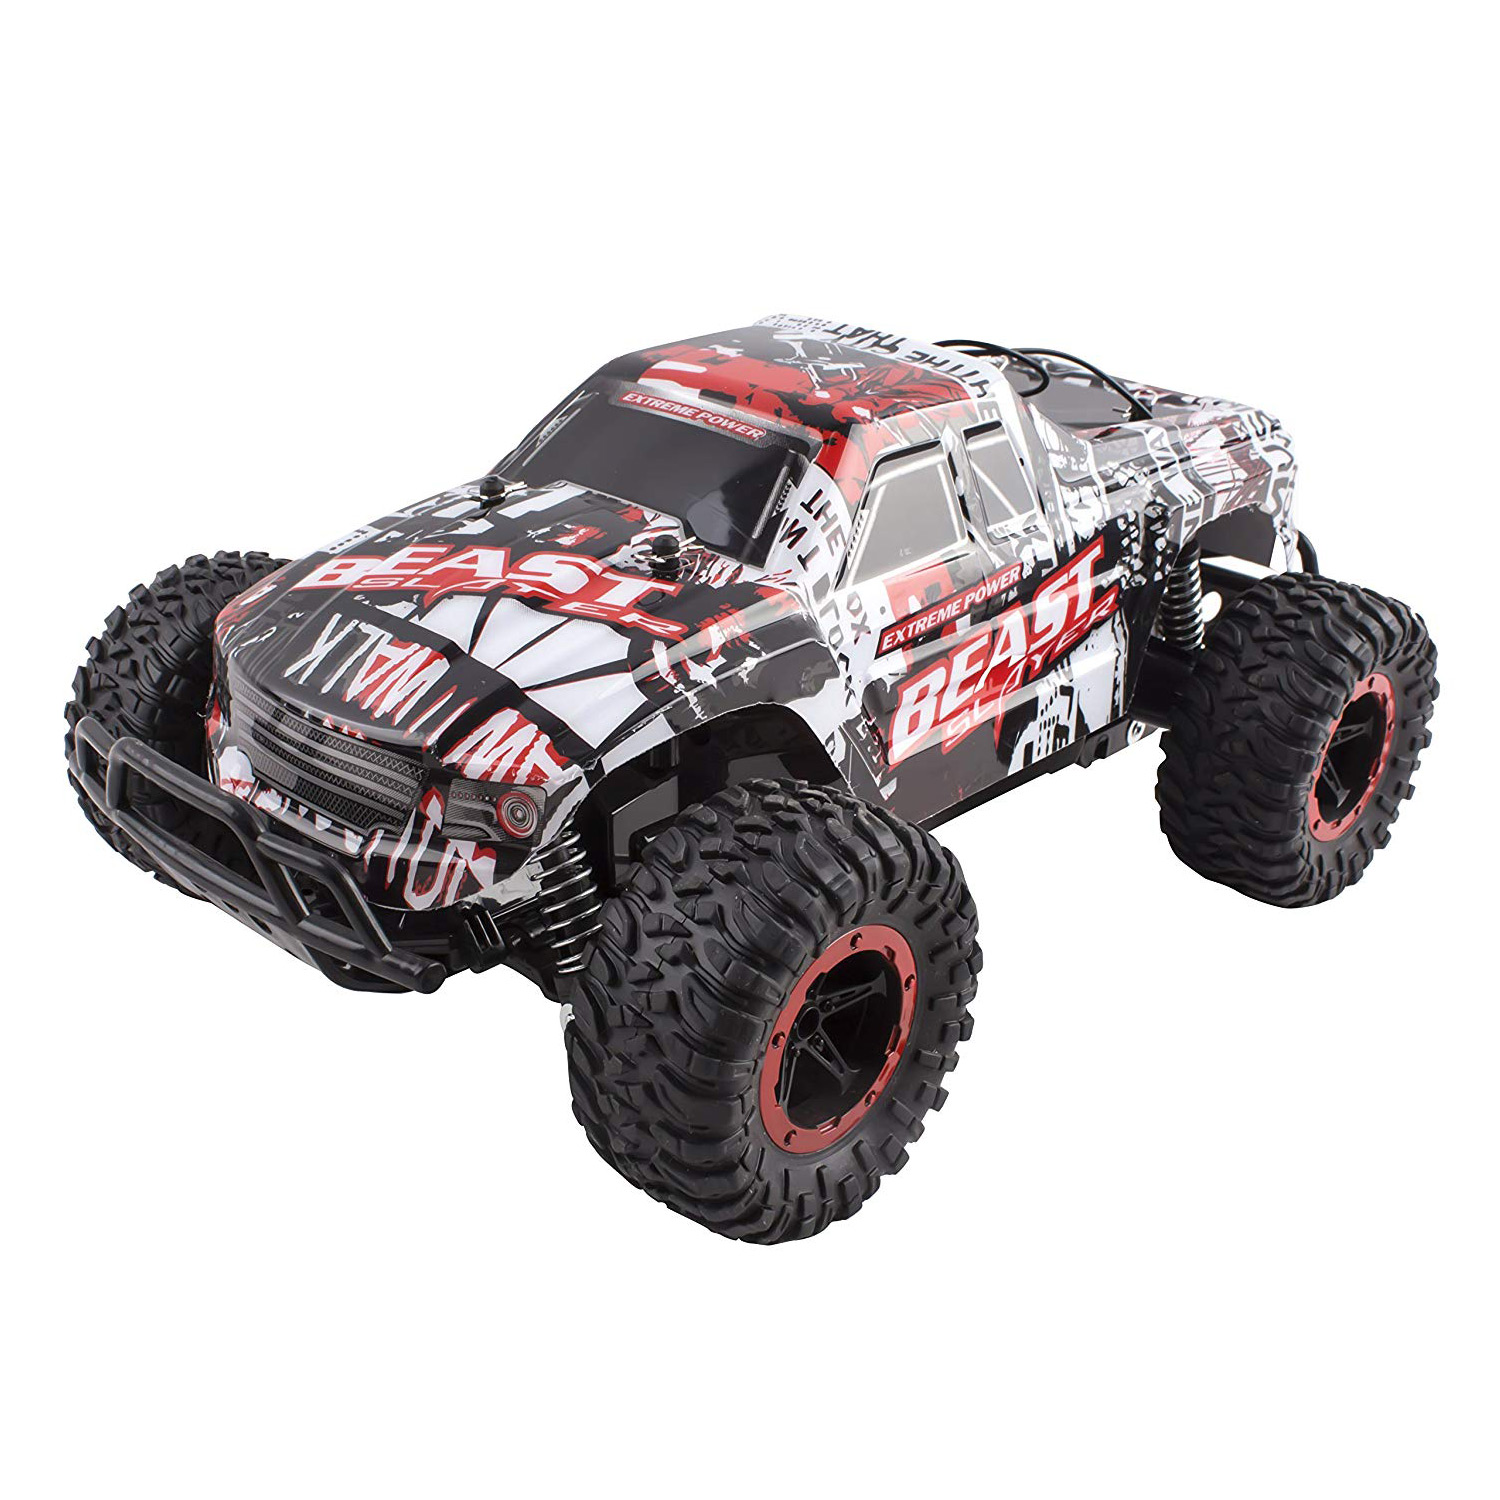 RC Truck Beast Slayer Removable Body Remote Control Turbo RC Buggy Car Large 1:16 Scale Size RTR With Working Suspension, High Speed, Radio Control Off-Road Hobby Truggy Rechargeable (Red)